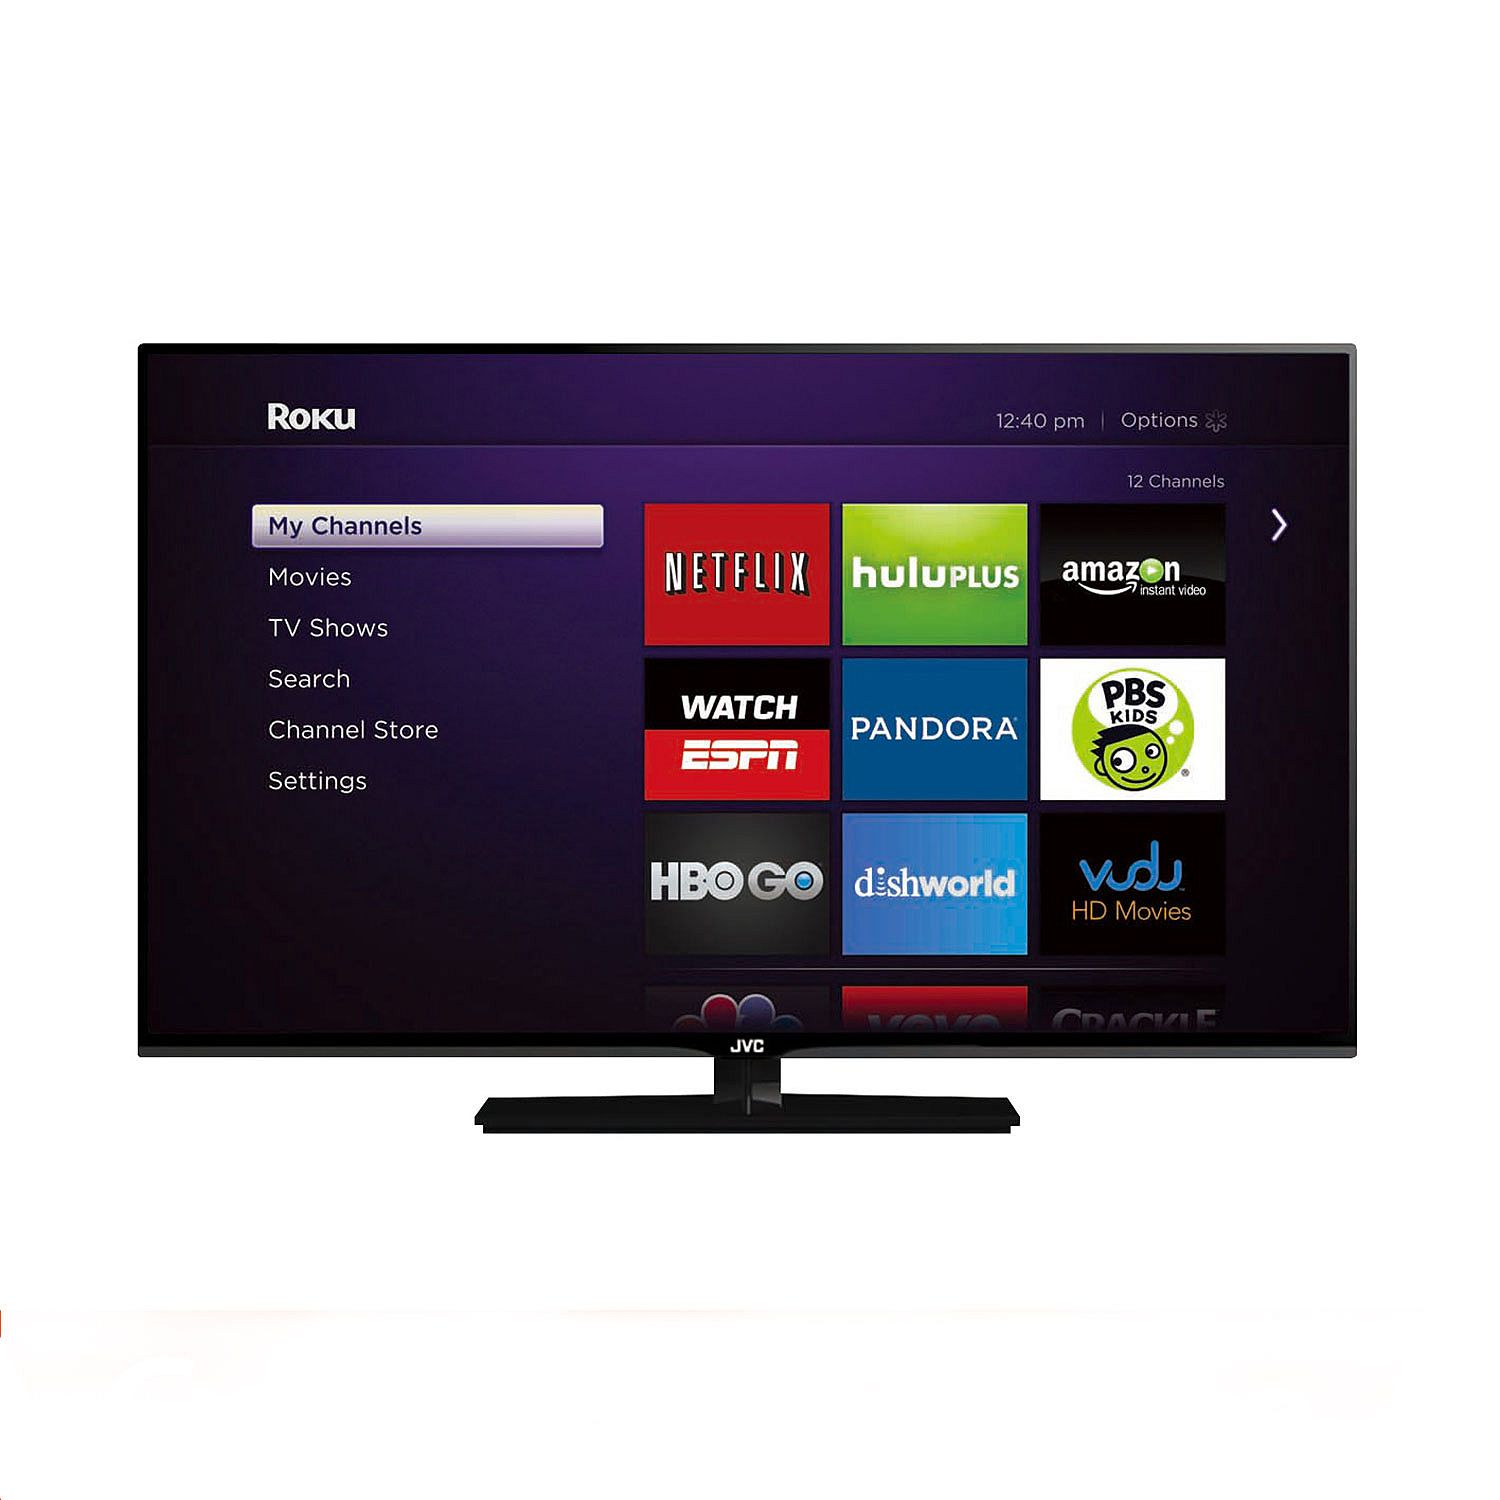 "JVC 42"" Class 1080p LED HDTV w/ Roku Streaming Stick - EM42FTR"